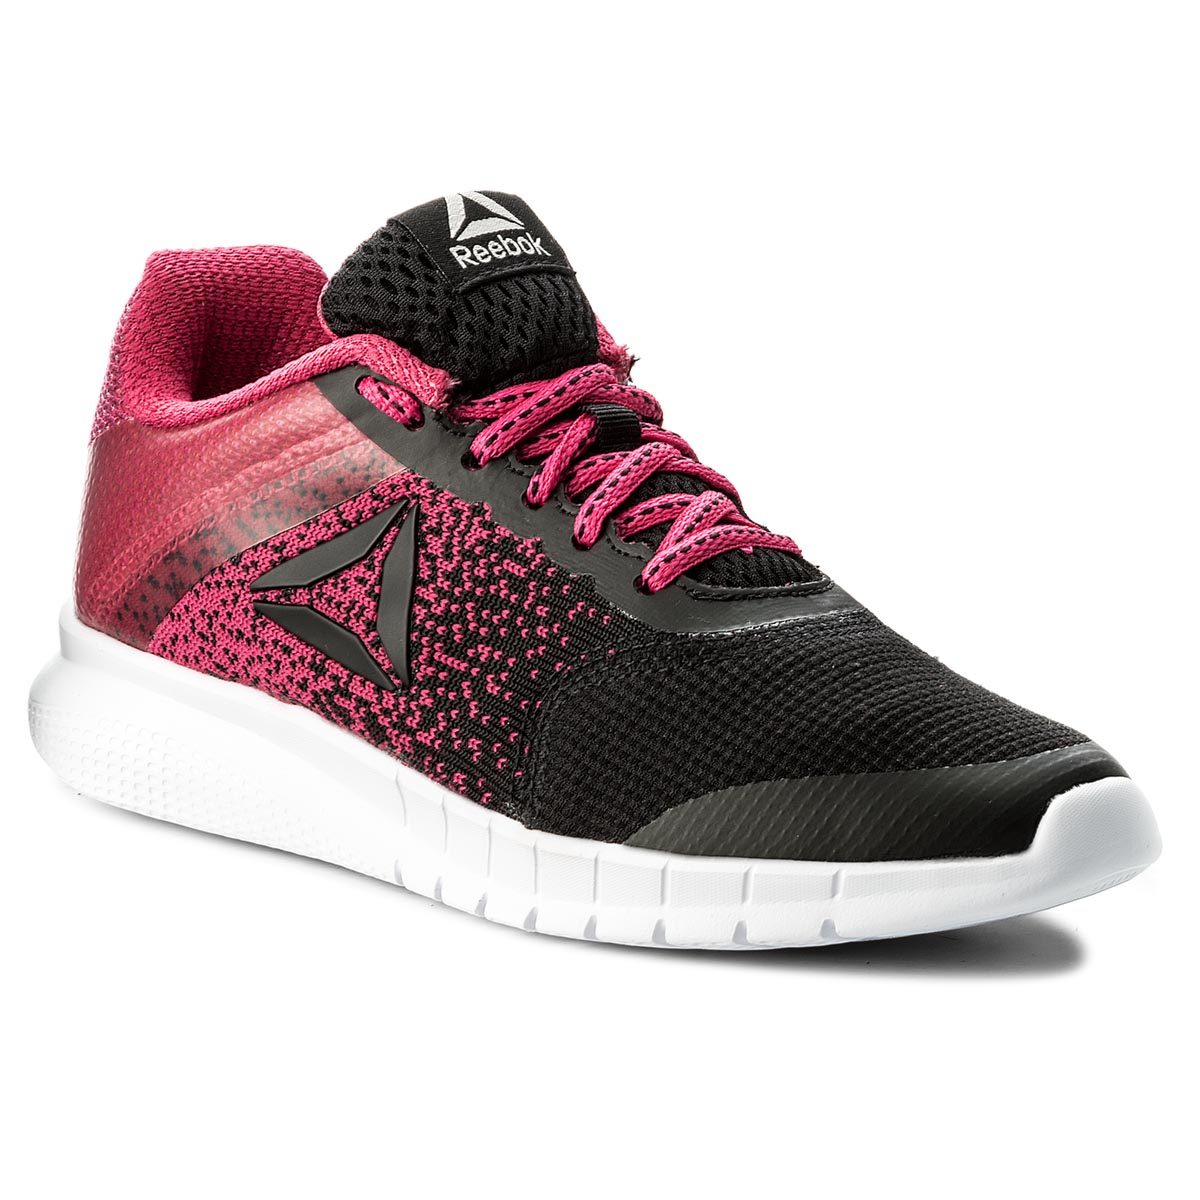 Buty Reebok - Instalite Run CN0848 Black/Overtly Pink/Wht